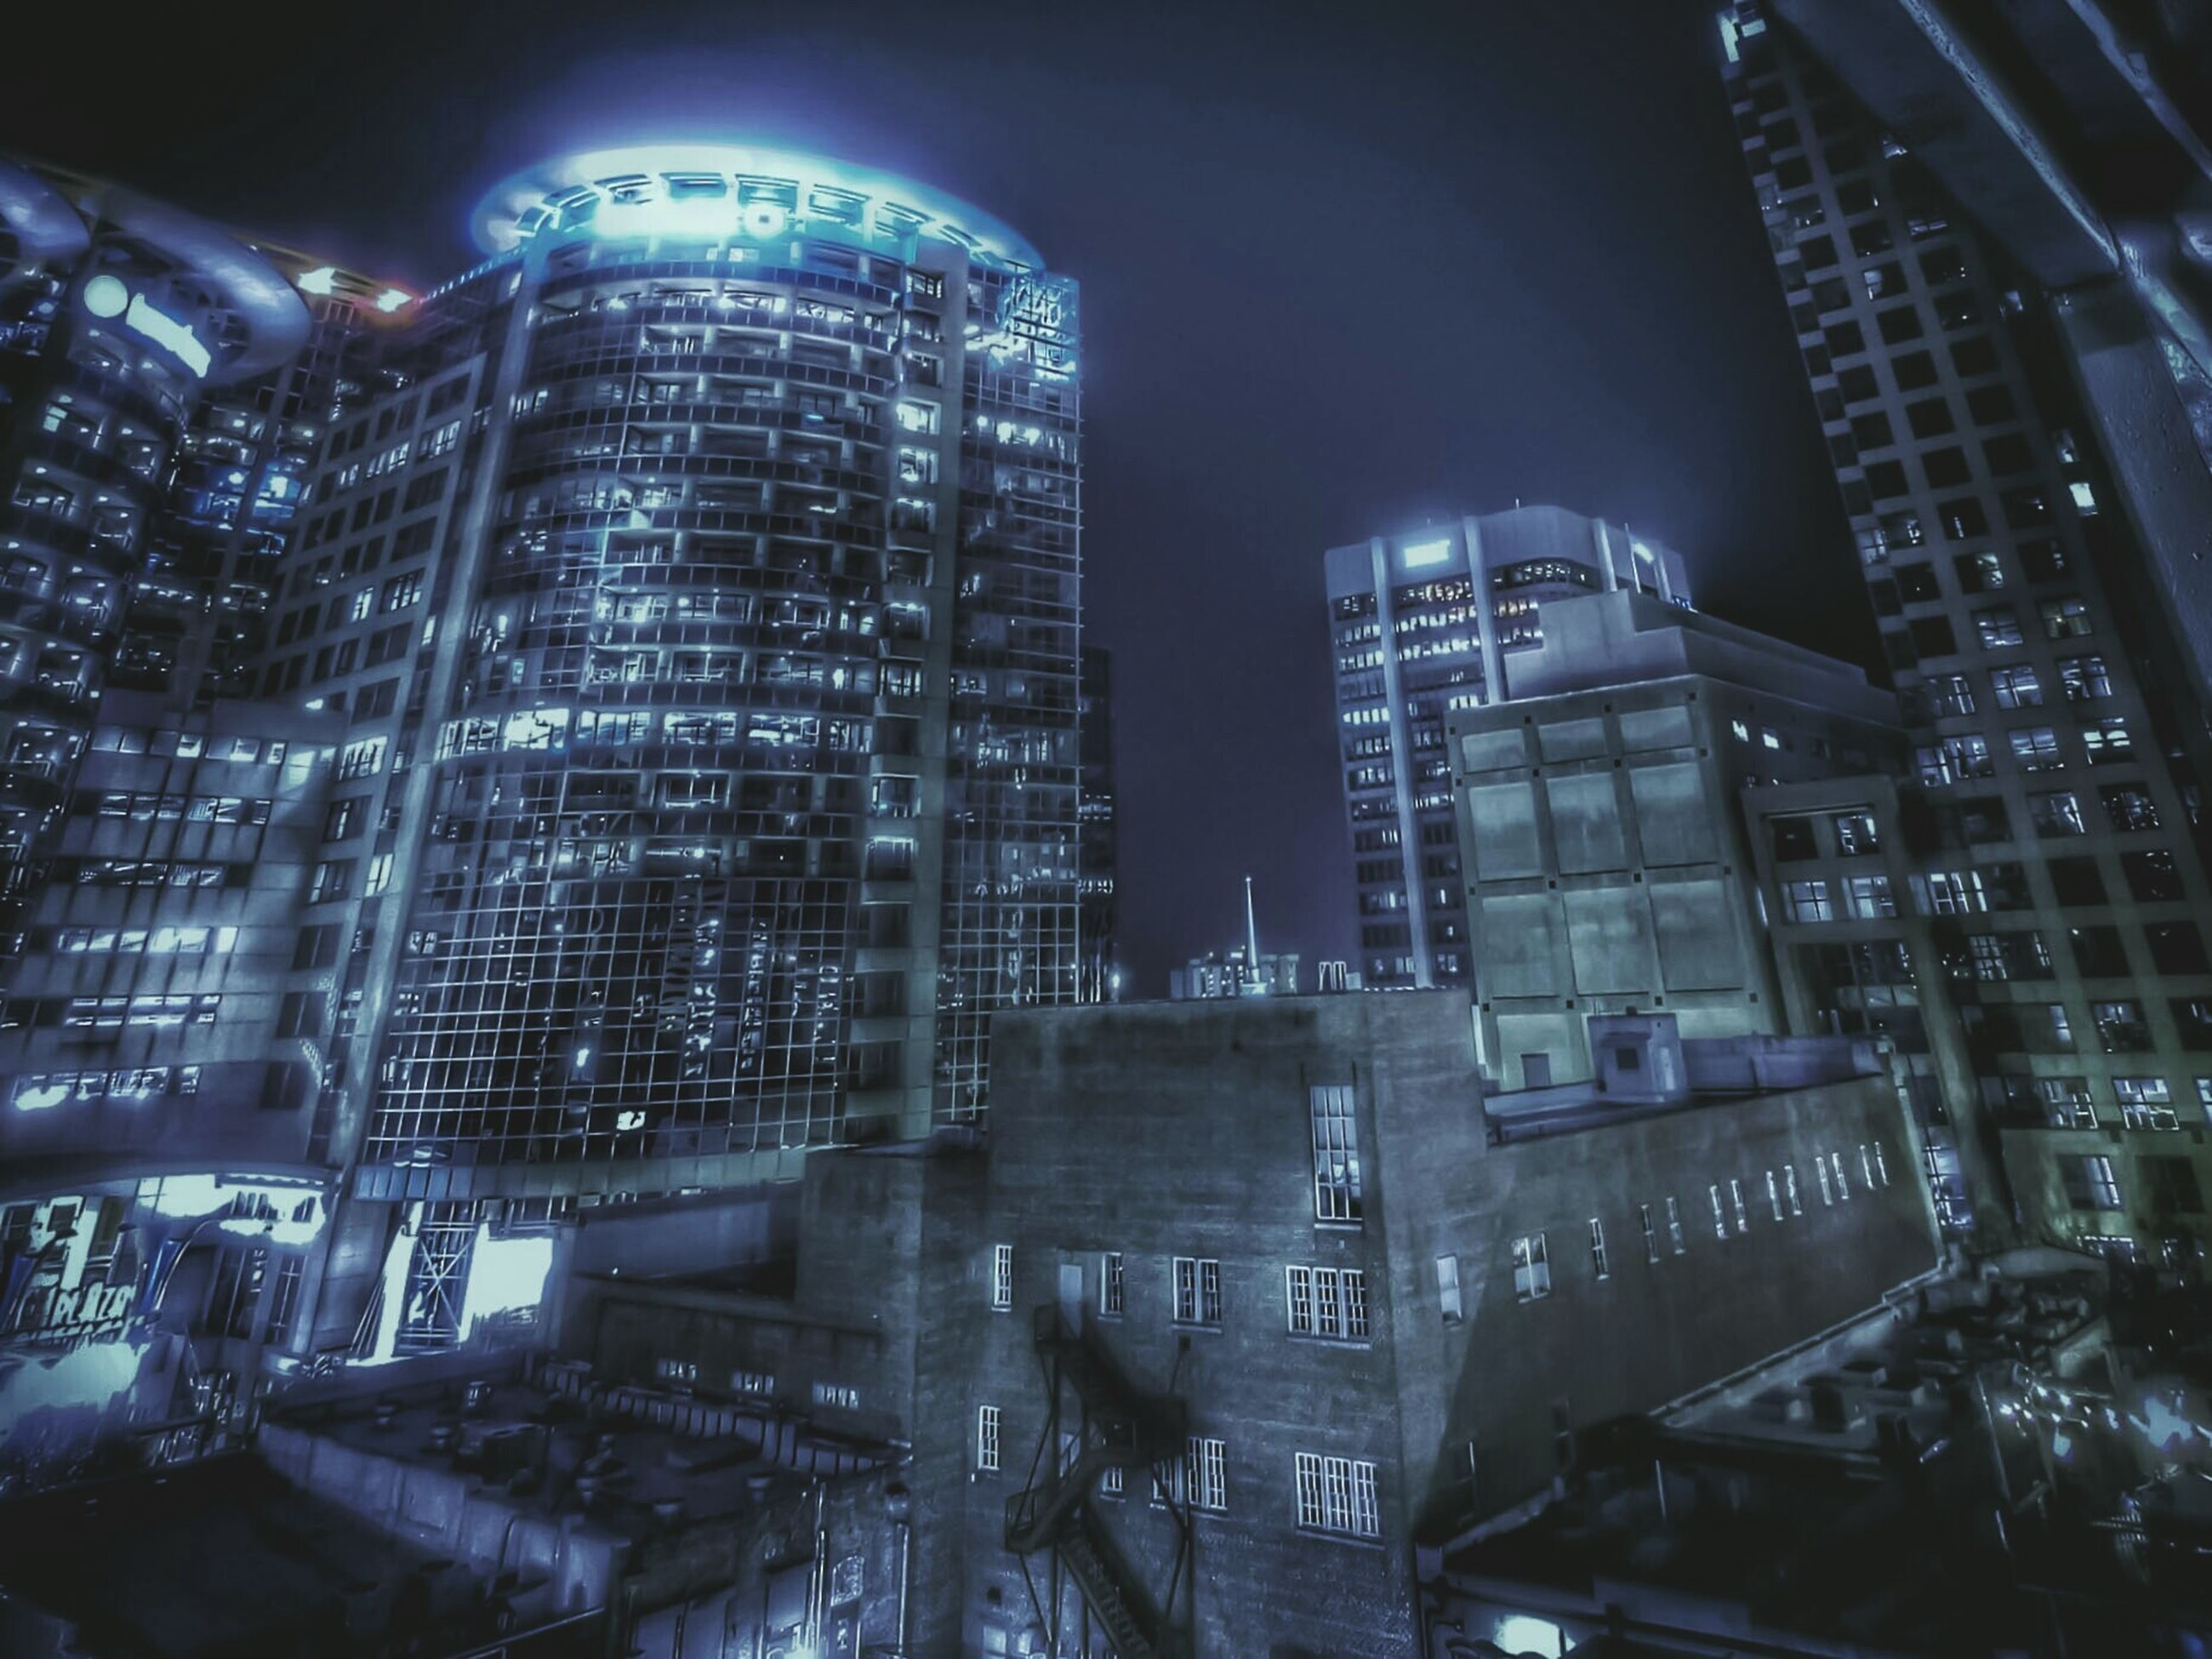 architecture, building exterior, built structure, night, illuminated, city, skyscraper, modern, tall - high, tower, office building, building, low angle view, capital cities, cityscape, no people, residential building, city life, travel destinations, sky